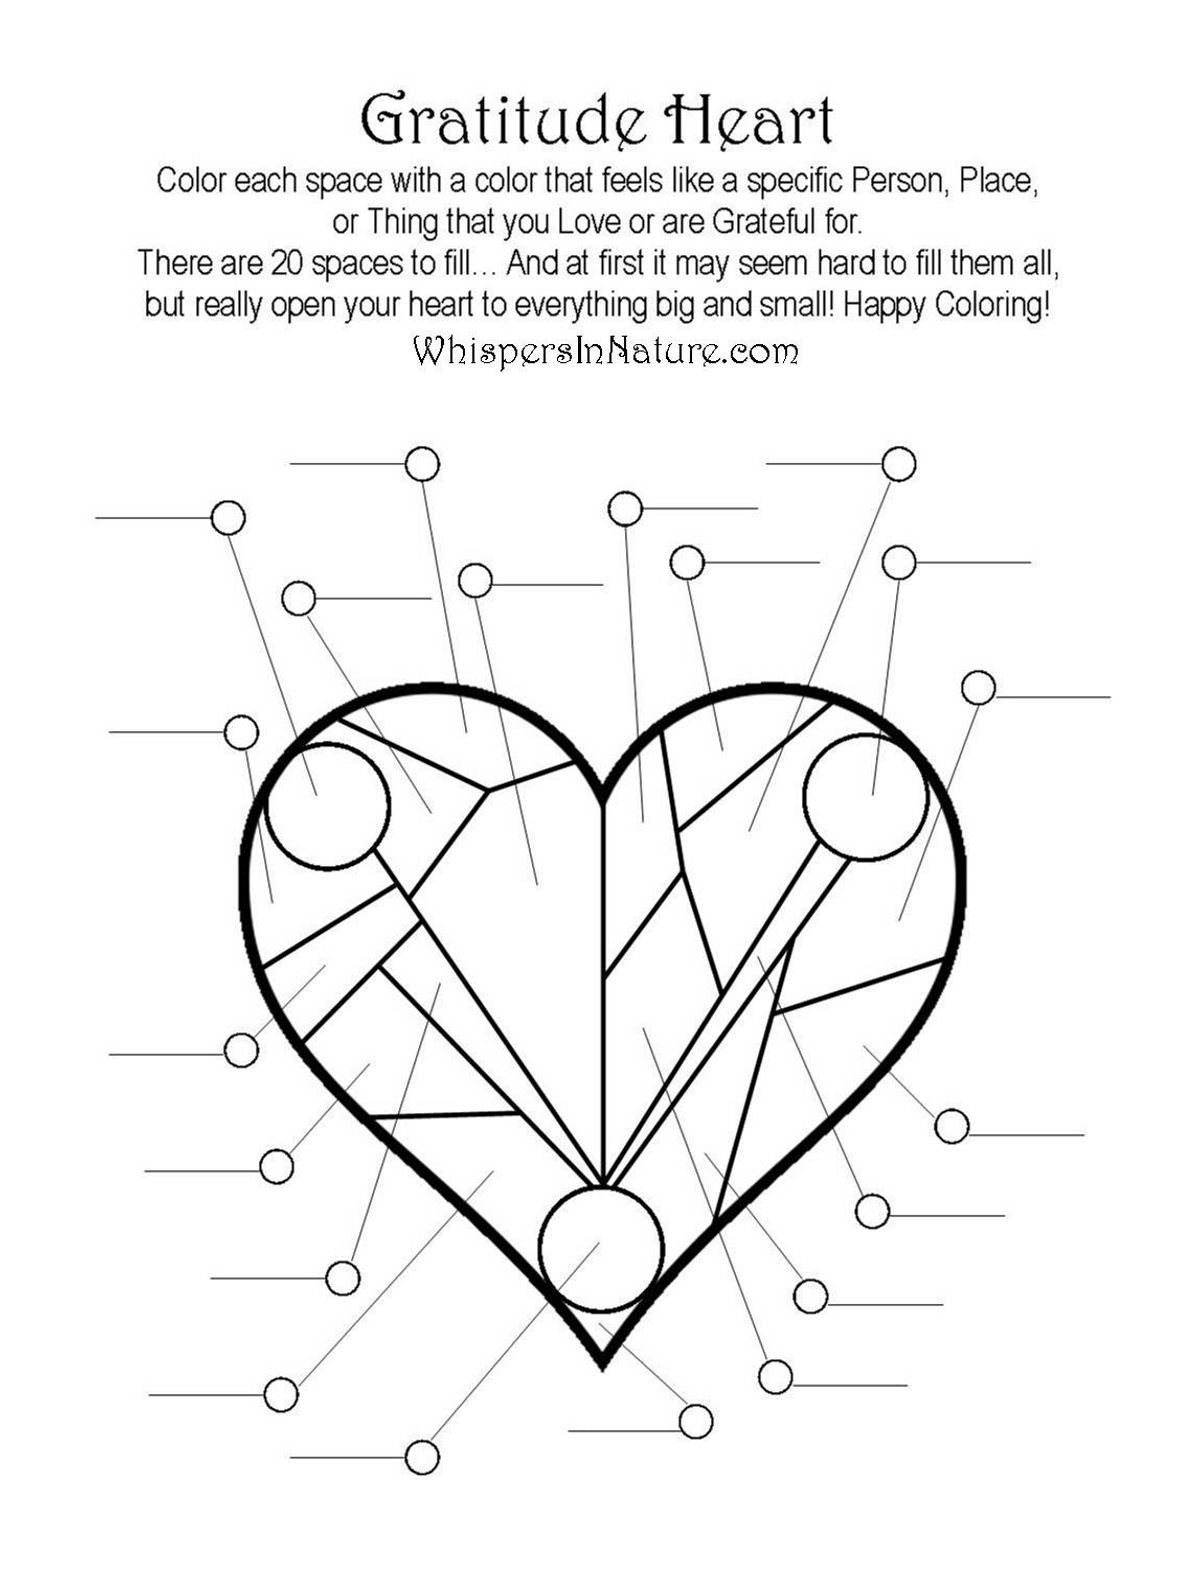 Gratitude Heart Colouring Page Free Colouring Pages